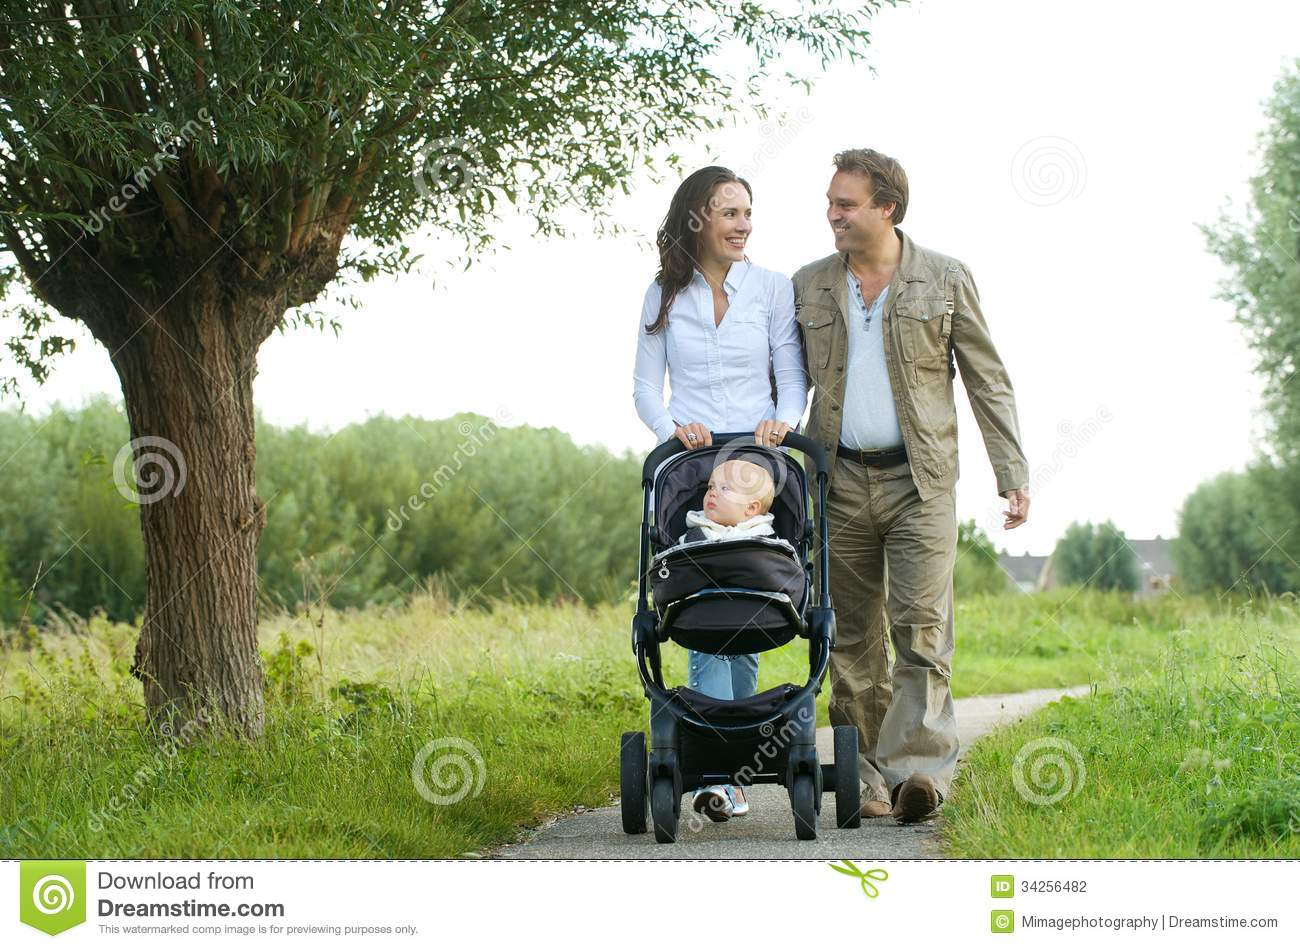 Baby Pram For Newborn Happy Mother And Father Walking With Baby In Pram Stock